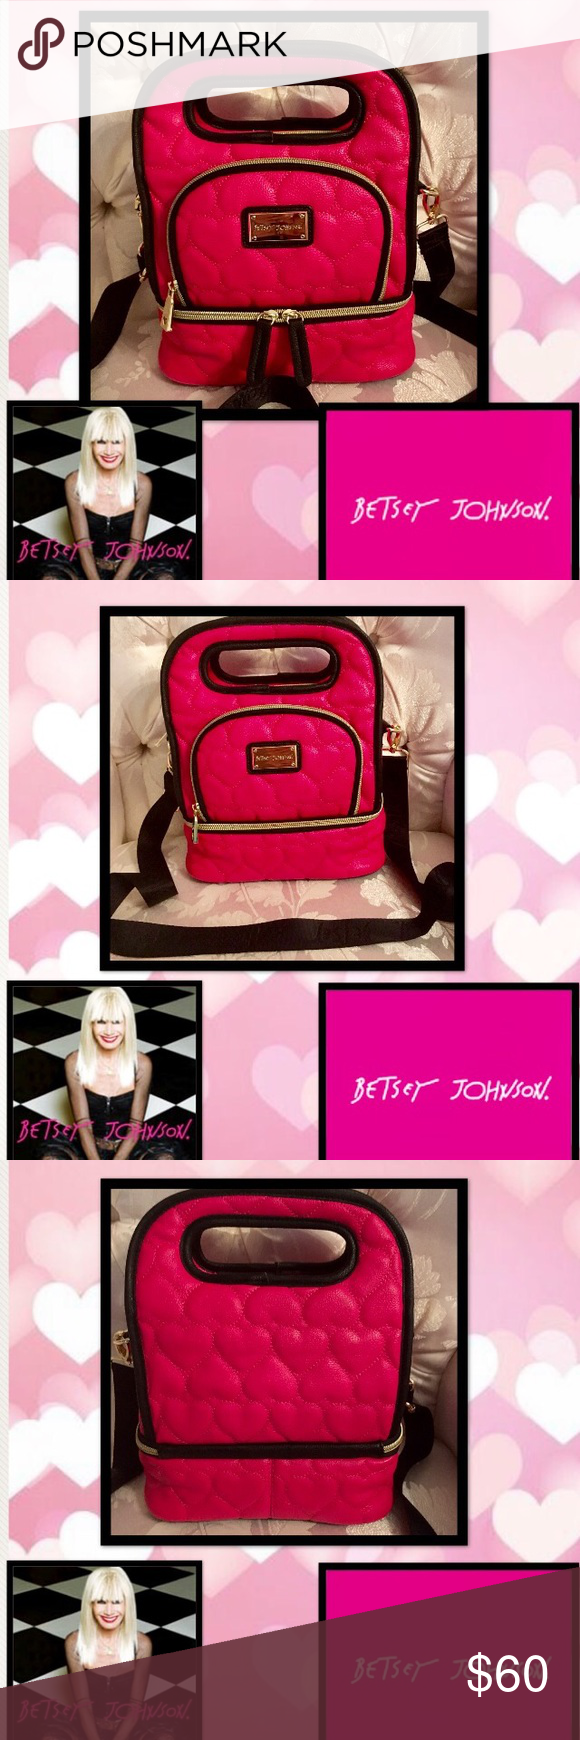 Betsey Johnson💖 Heart Insulated Lunch Tote Beautiful